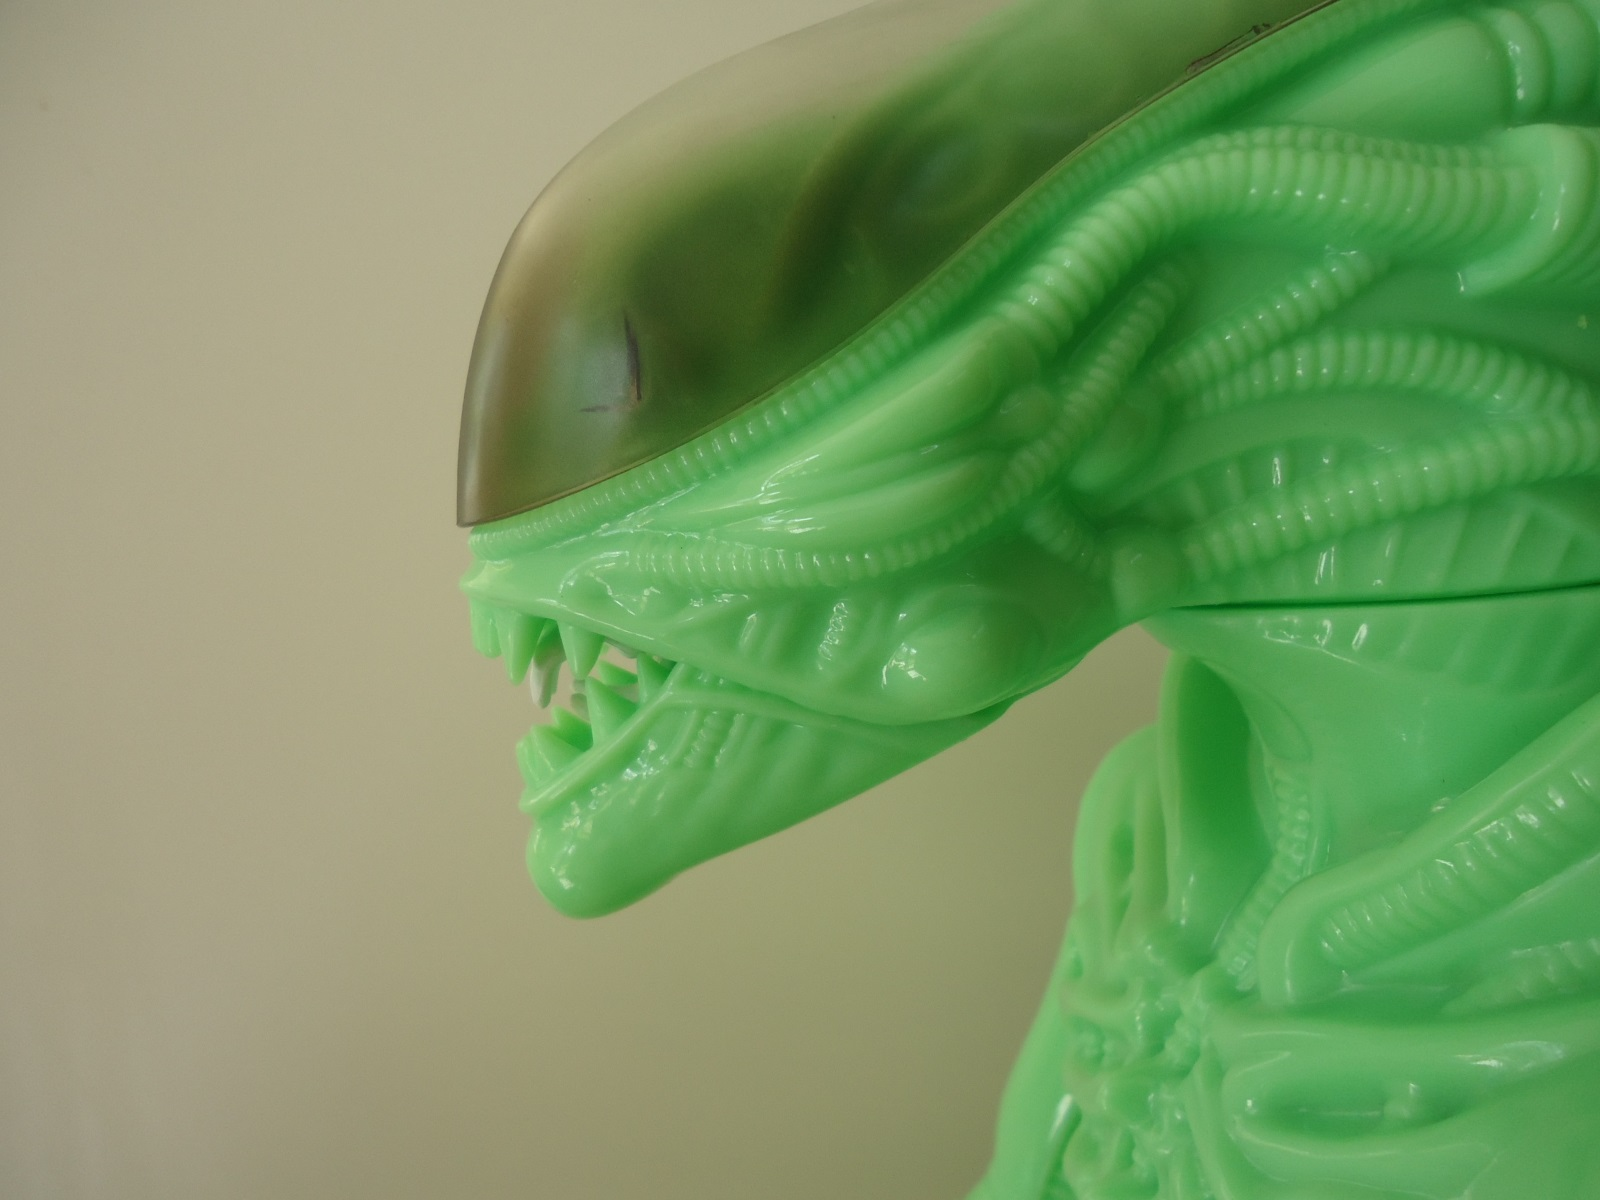 24 inch tall Gentle Giant glow in the dark ALIEN action figure with mouth closed.